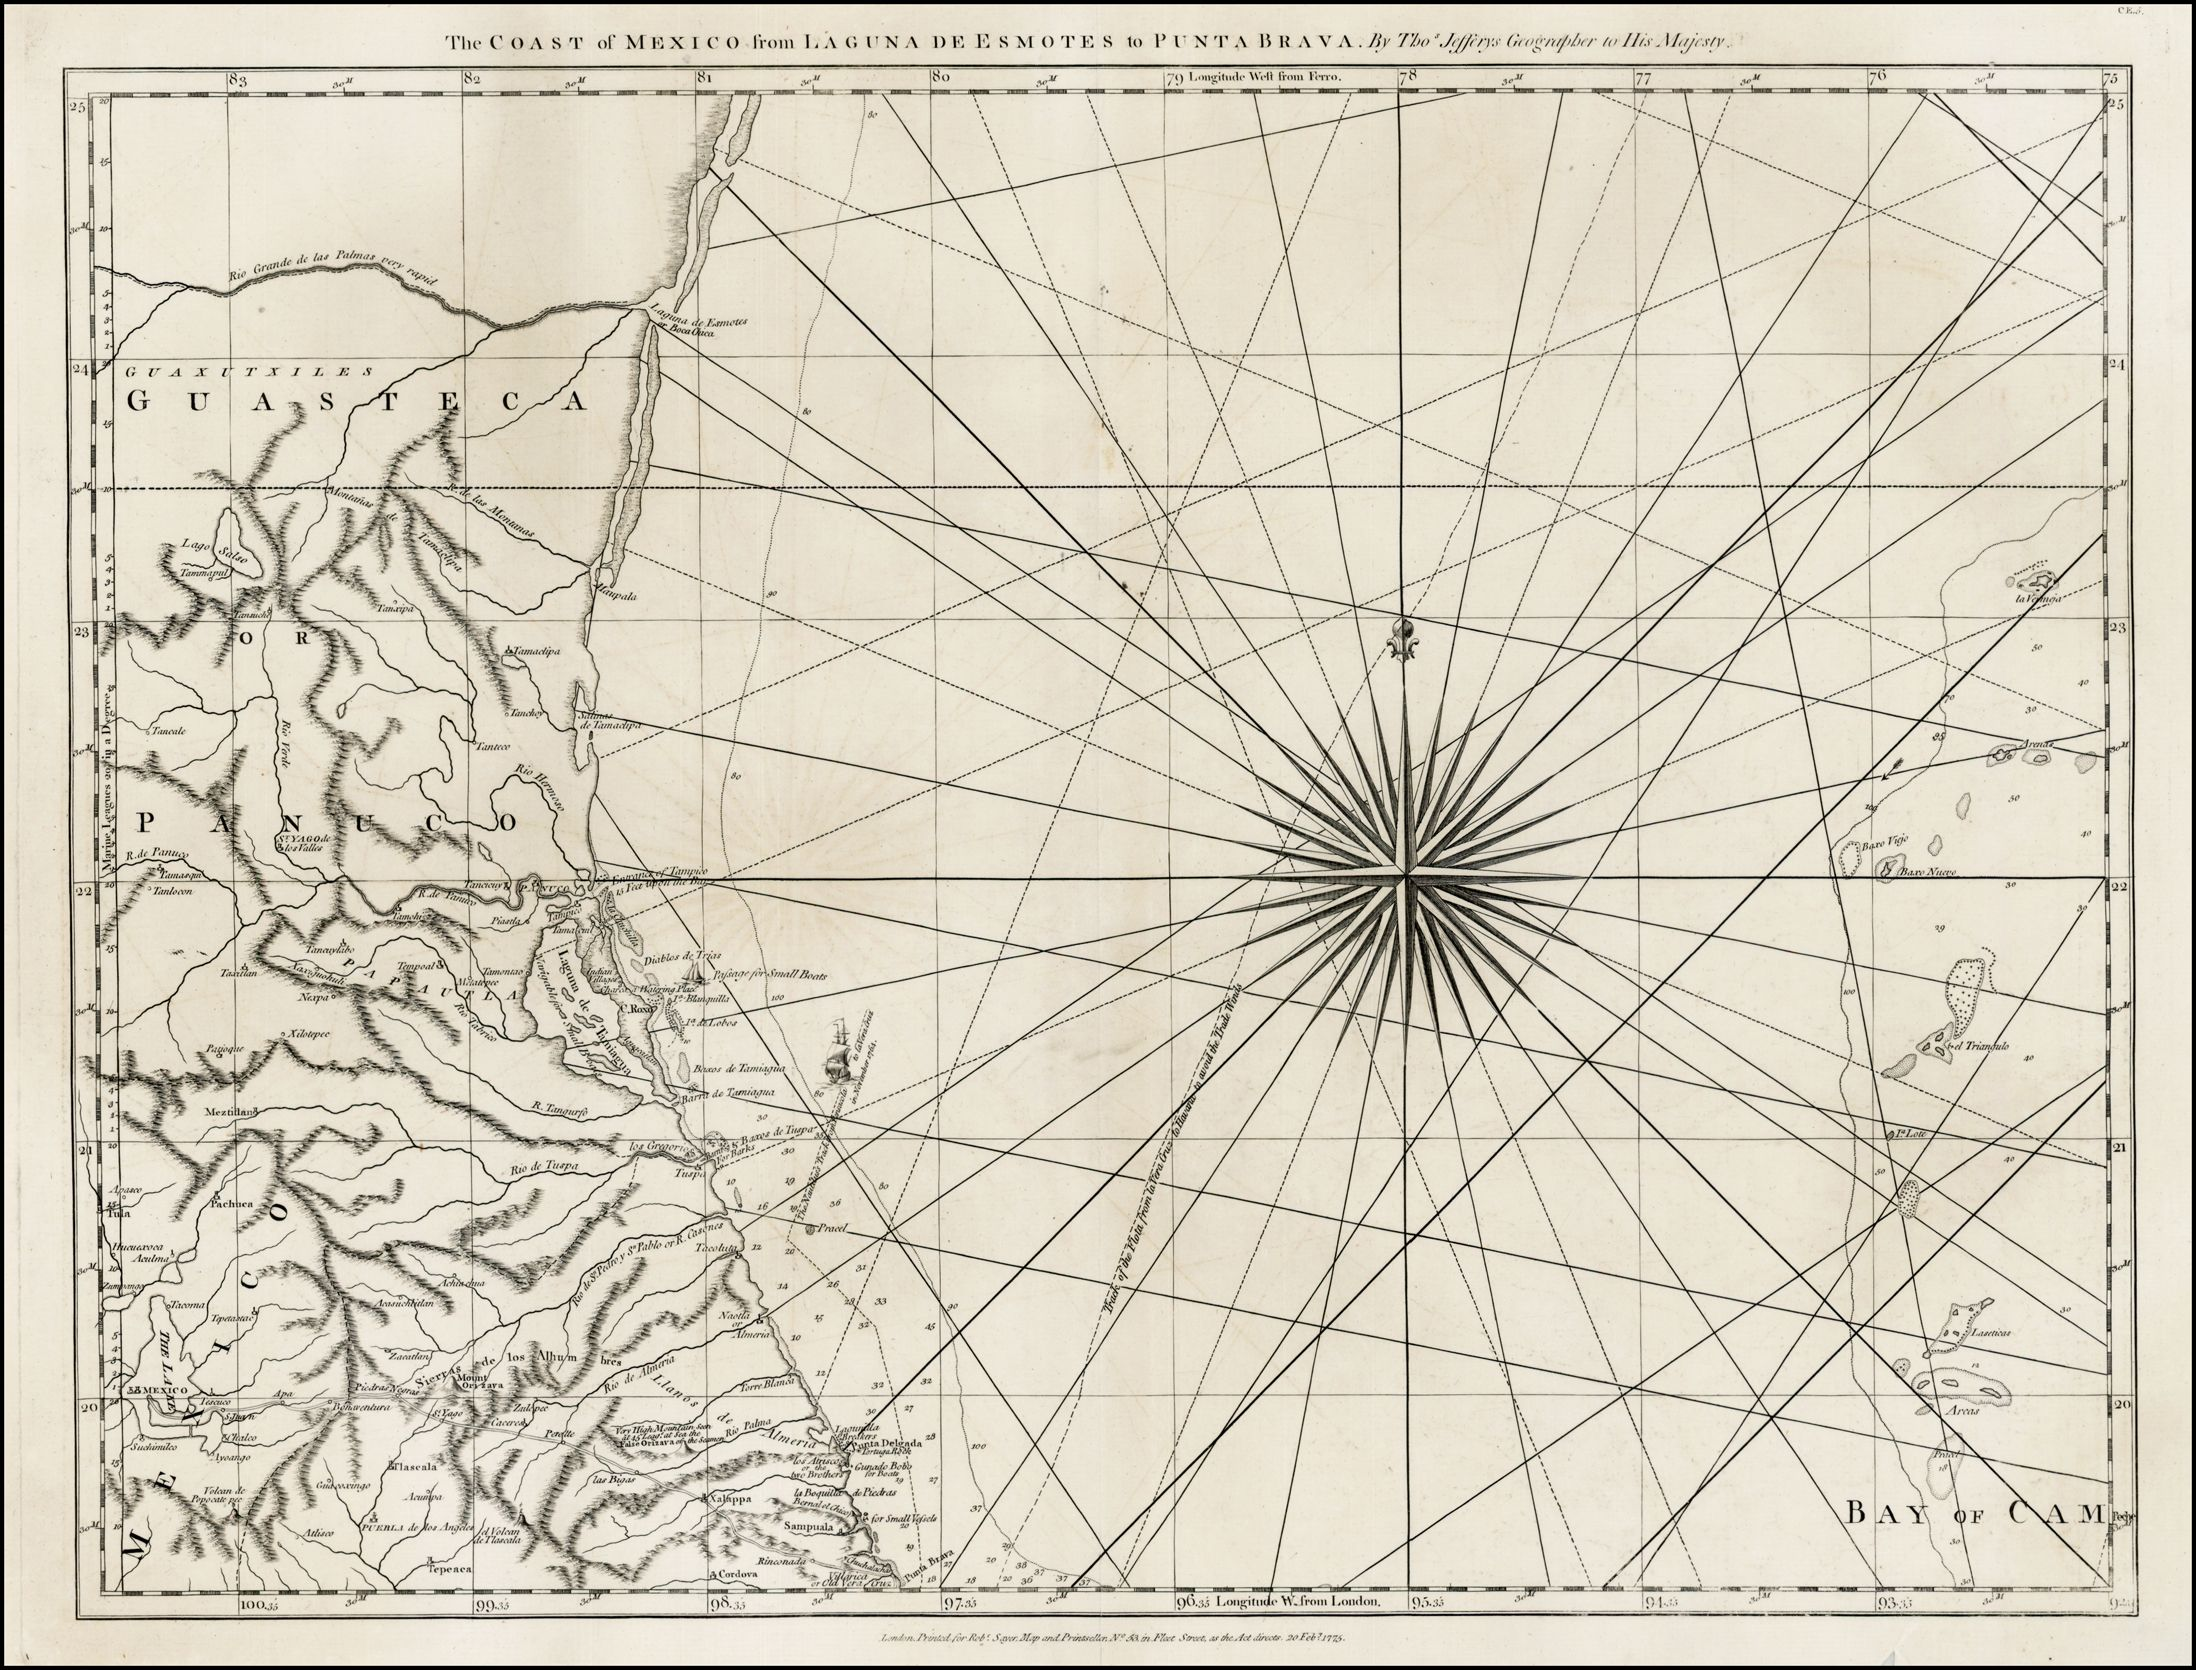 Barry Lawrence Ruderman Antique Maps Inc.-The Coast of Mexico from Laguna de Esmotes to Punta Brava . . . . (Vera Cruz to South Padre Island, Texas)    Map Maker: Thomas Jefferys    Place / Date: London / 1775    Coloring: Uncolored    Size: 25 x 18.5 inches    Condition: VG  Price: $450.00  Inventory ID: 33036